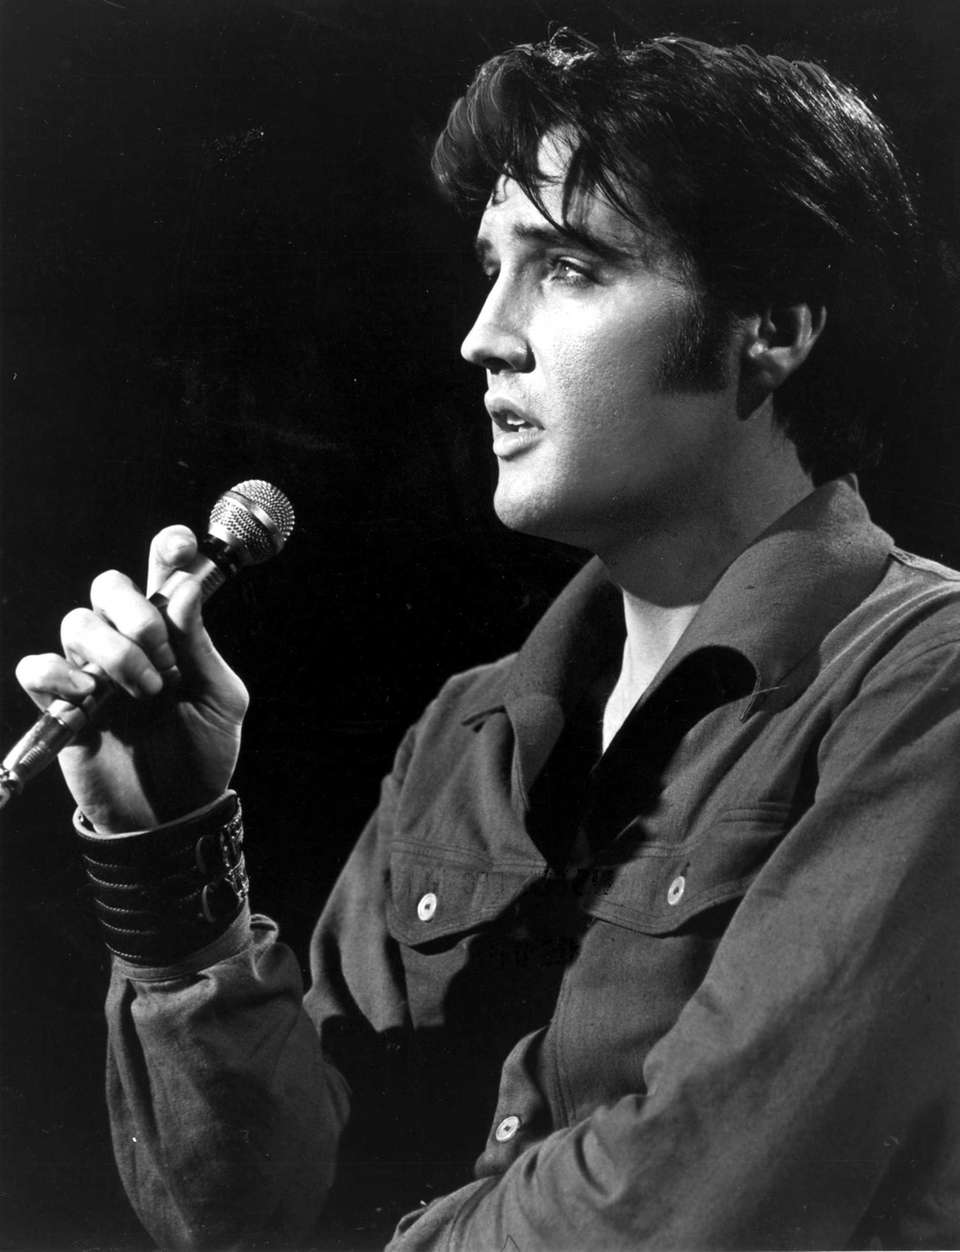 Elvis Presley sings romantic ballads on his